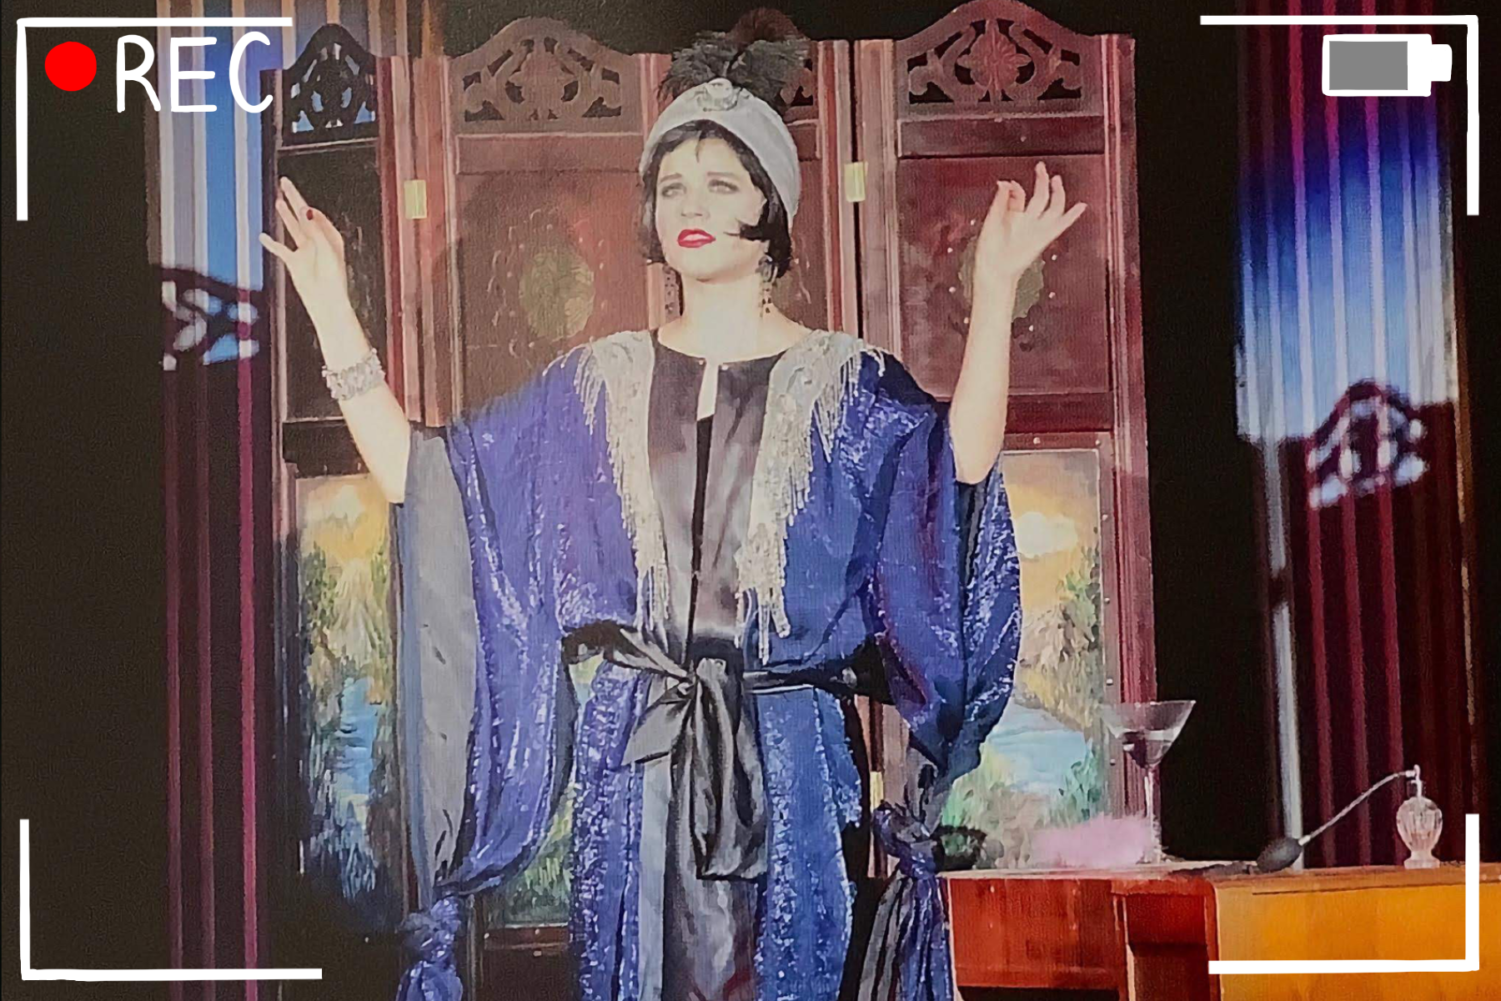 """Coppell High School 2013 graduate  María José Zuniga performs in the CHS theatre production of """"The Drowsy Chaperone"""". María José Zuniga recently starred in the 2019 thriller Survival Box. Photo courtesy Round-Up"""